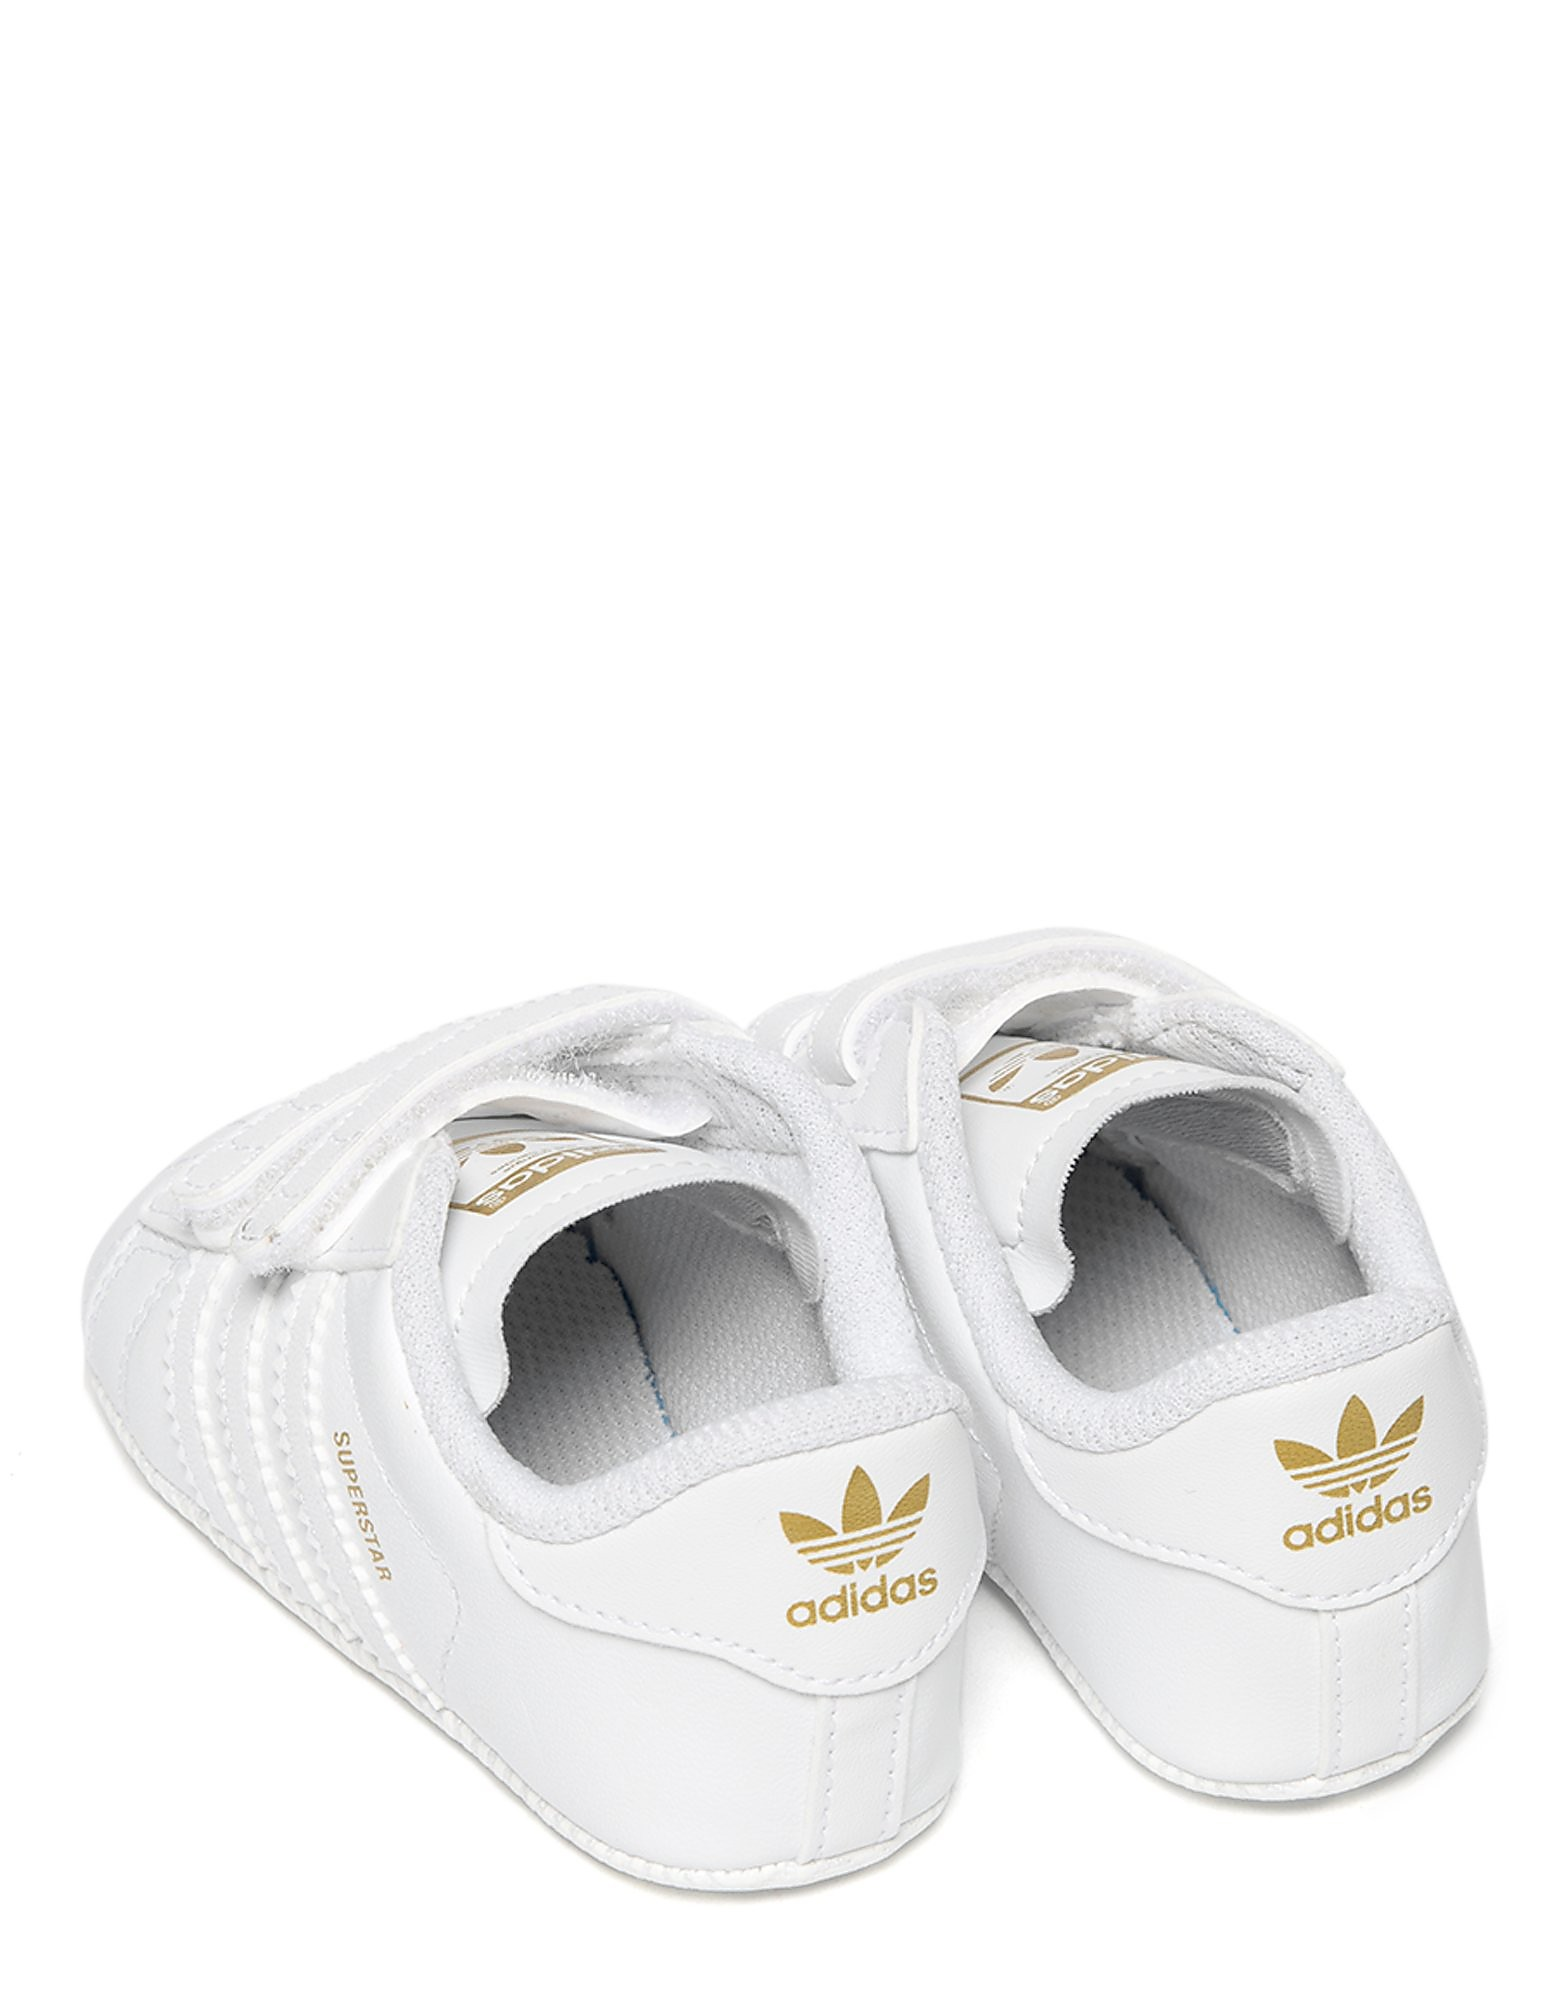 adidas Originals Superstar Crib infantil